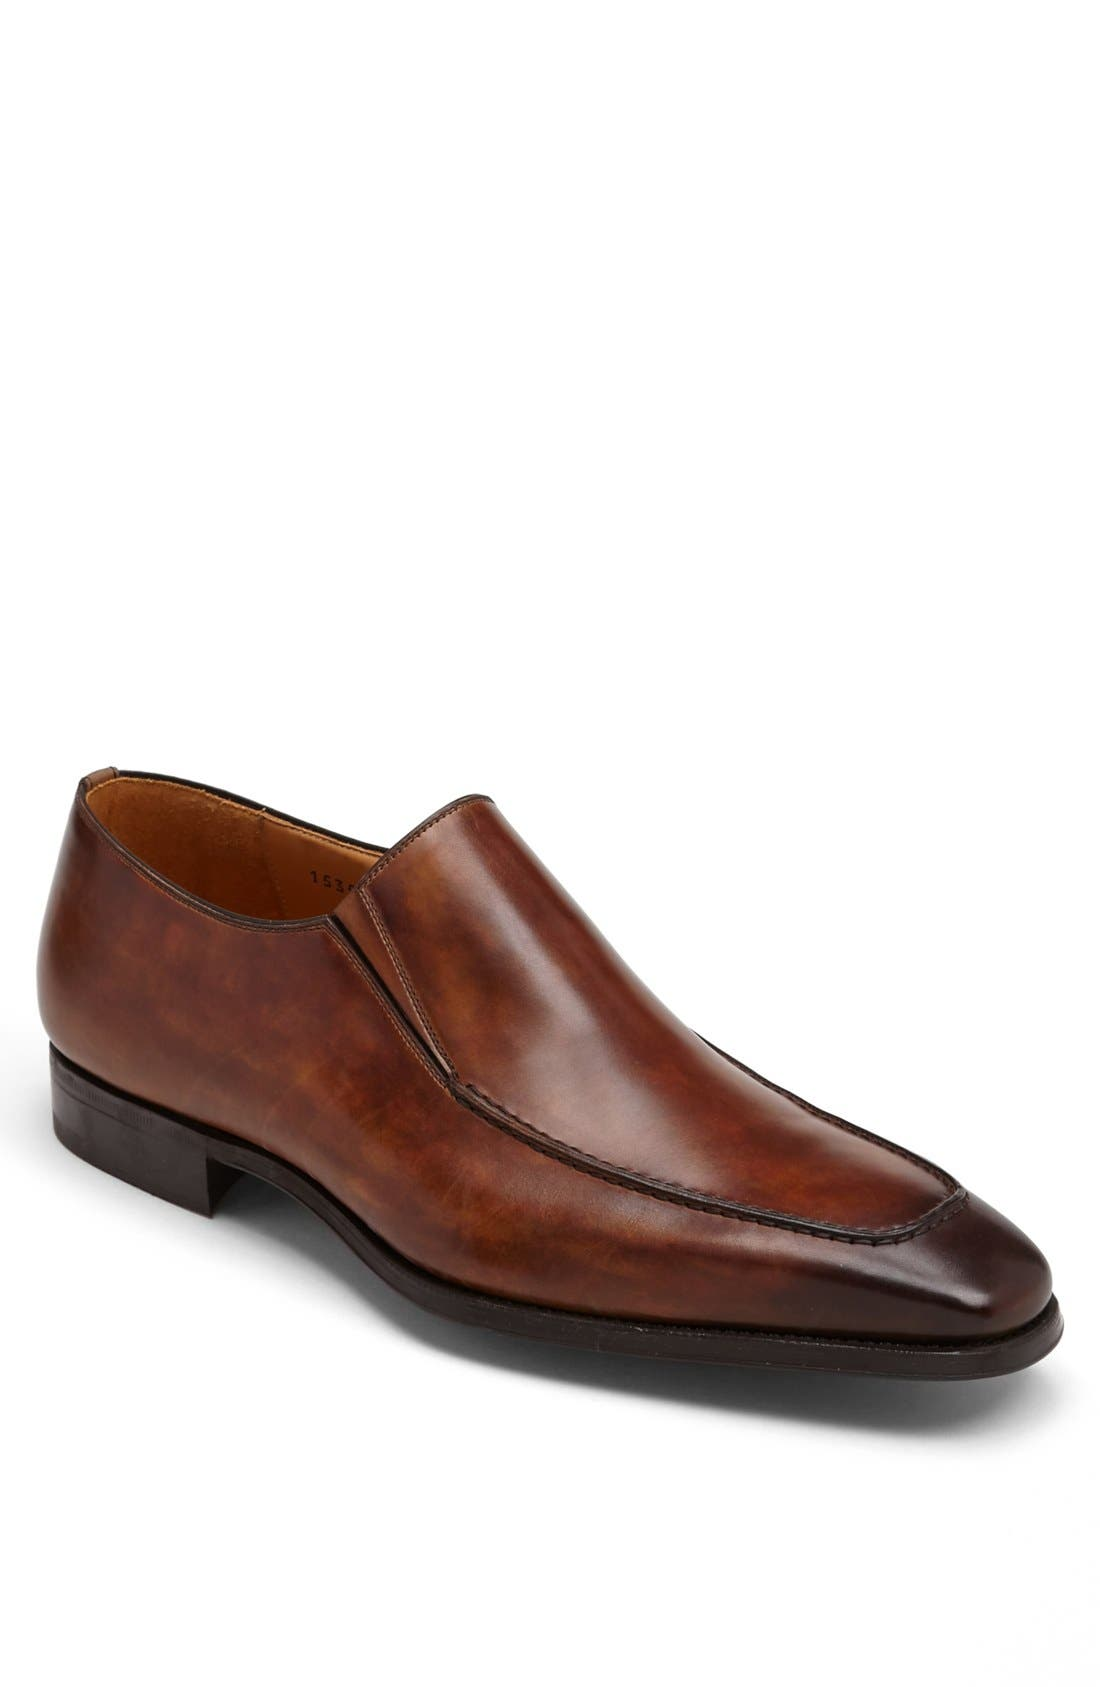 Alternate Image 1 Selected - Magnanni 'Leo' Venetian Loafer